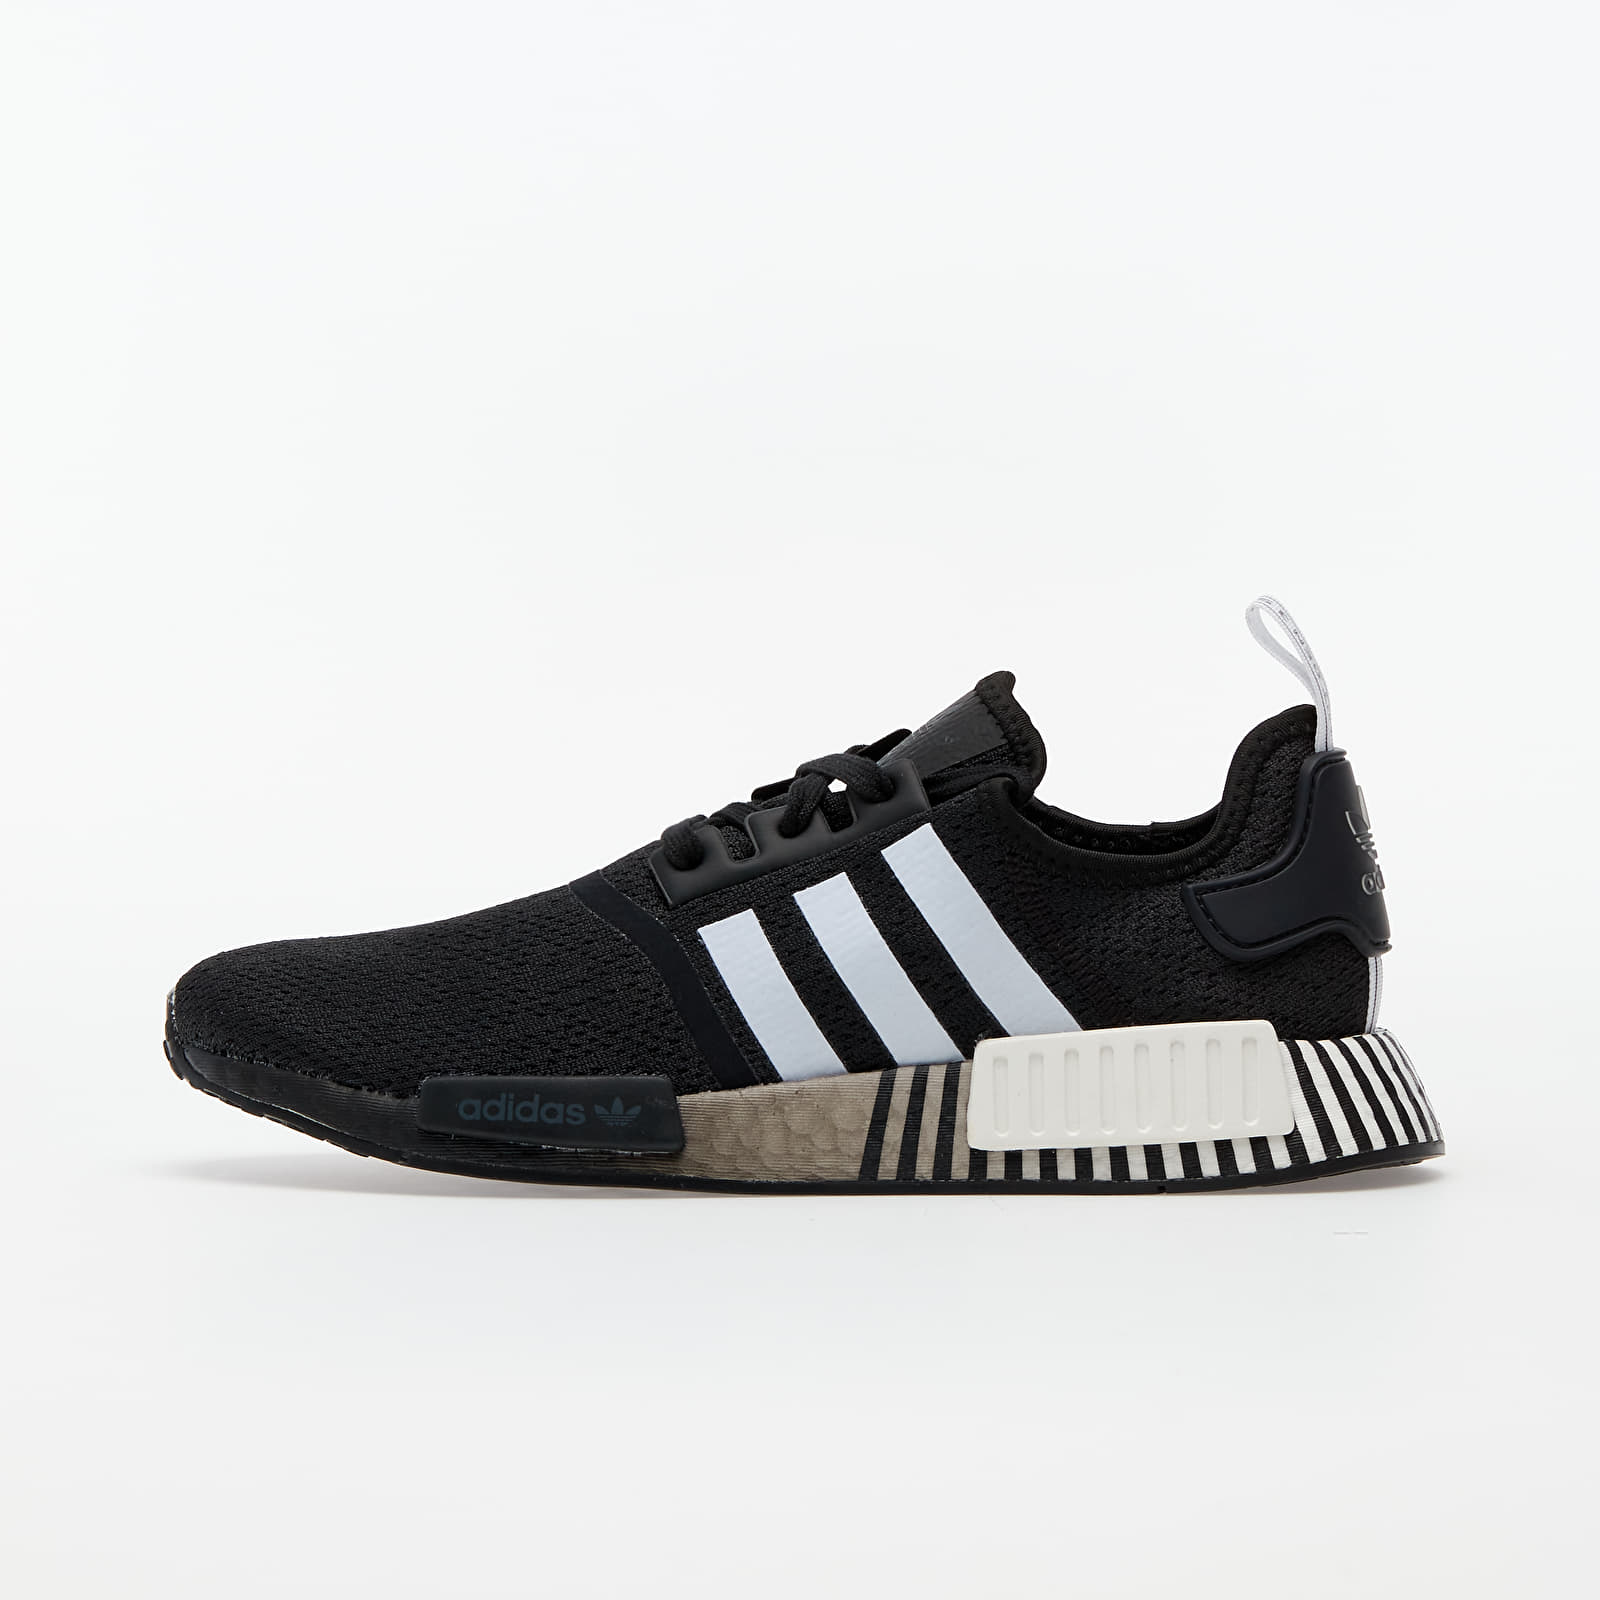 Chaussures et baskets homme adidas NMD_R1 Core Black/ Ftw White/ Core Black